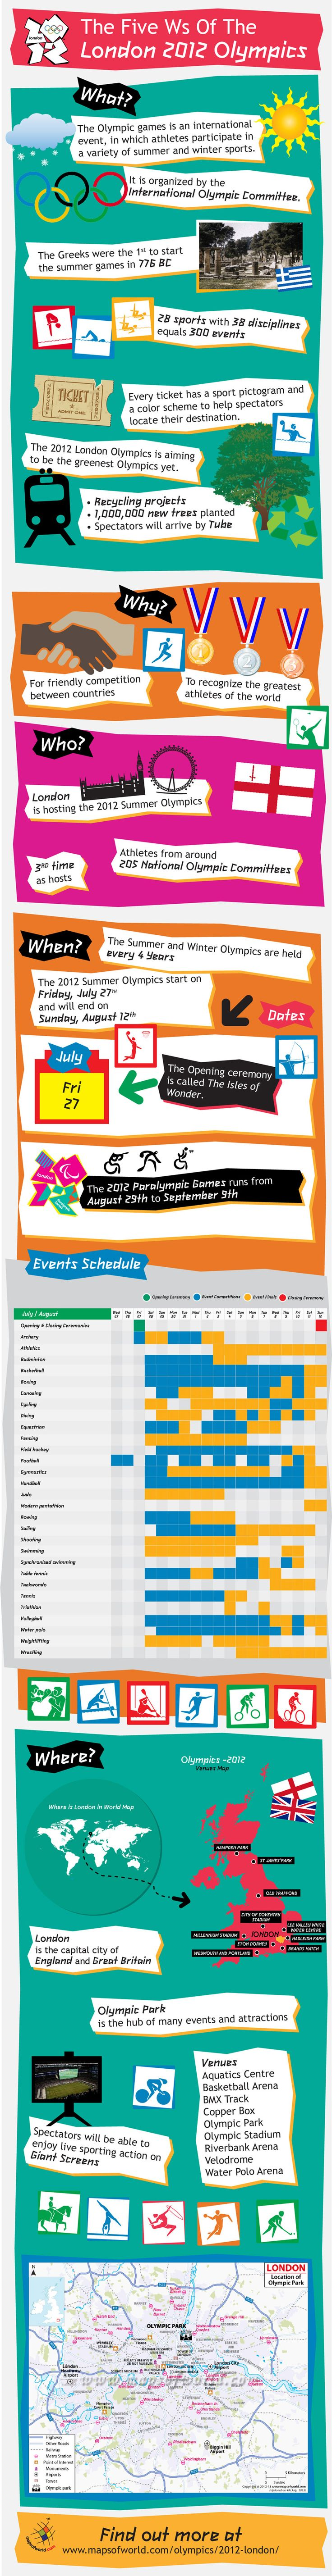 A fun infographics about the London 2012 Olympics, Explore amazing Olympic facts and figures, including Olympic venues, schedules, events, trivia, opening and closing Ceremony etc.  #London #2012 #Olympics #Infographic